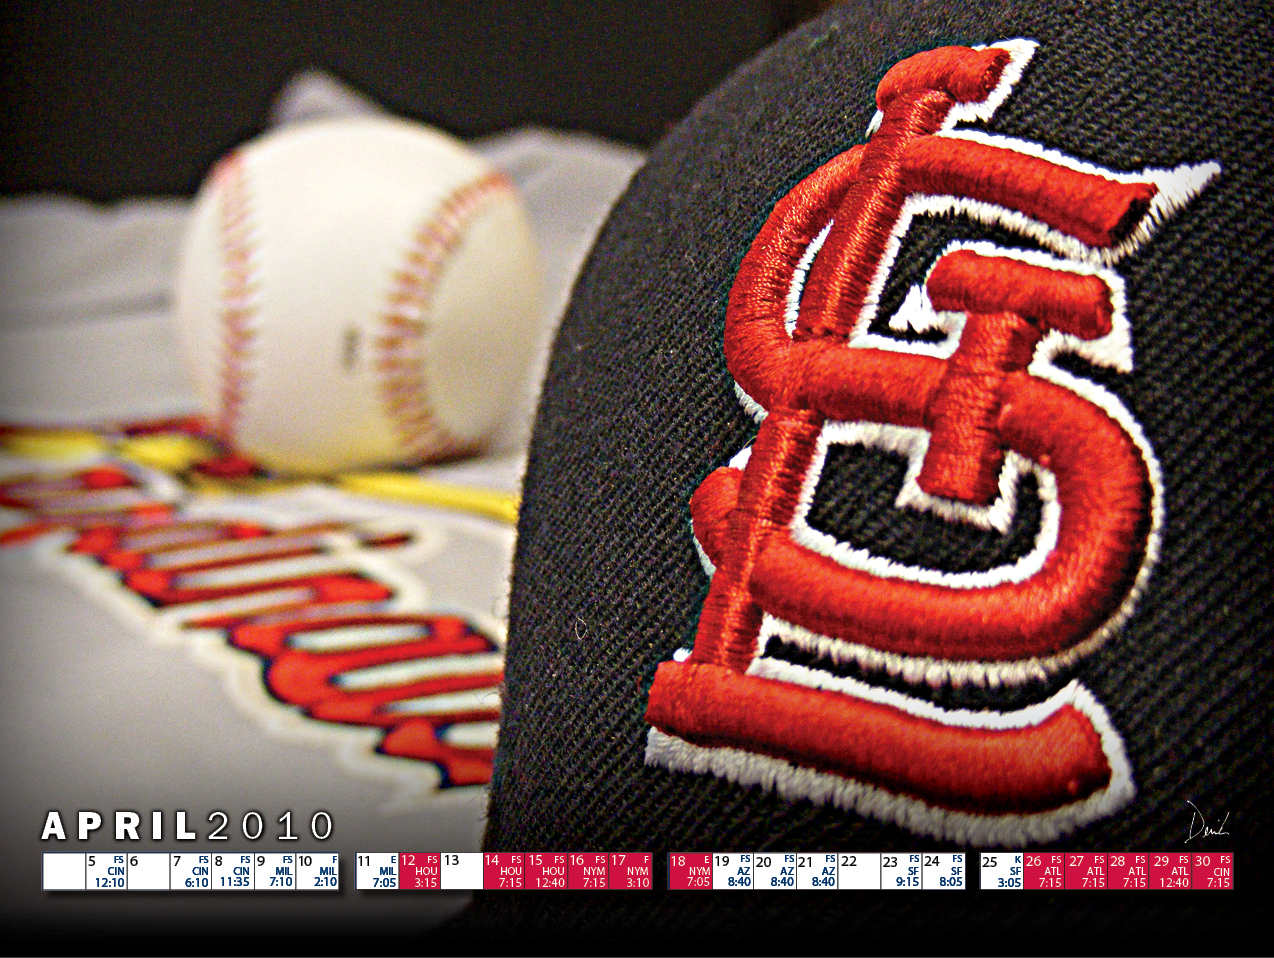 Derrick Docket April 2010 St Louis Cardinals Wallpaper 1274x958